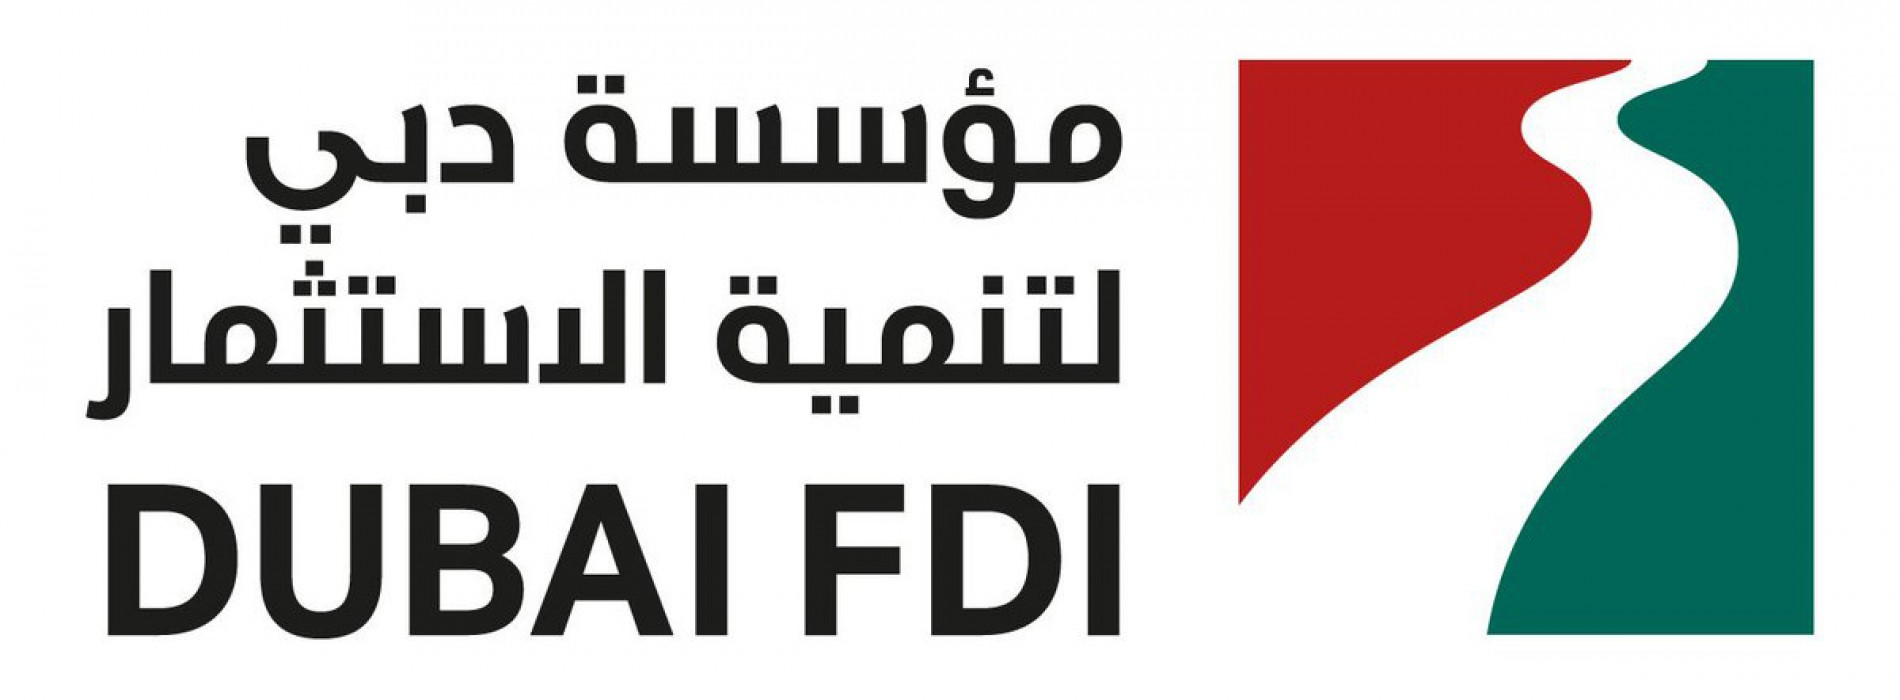 Dubai FDI partners with VFS Global to ease foreign investors licensing